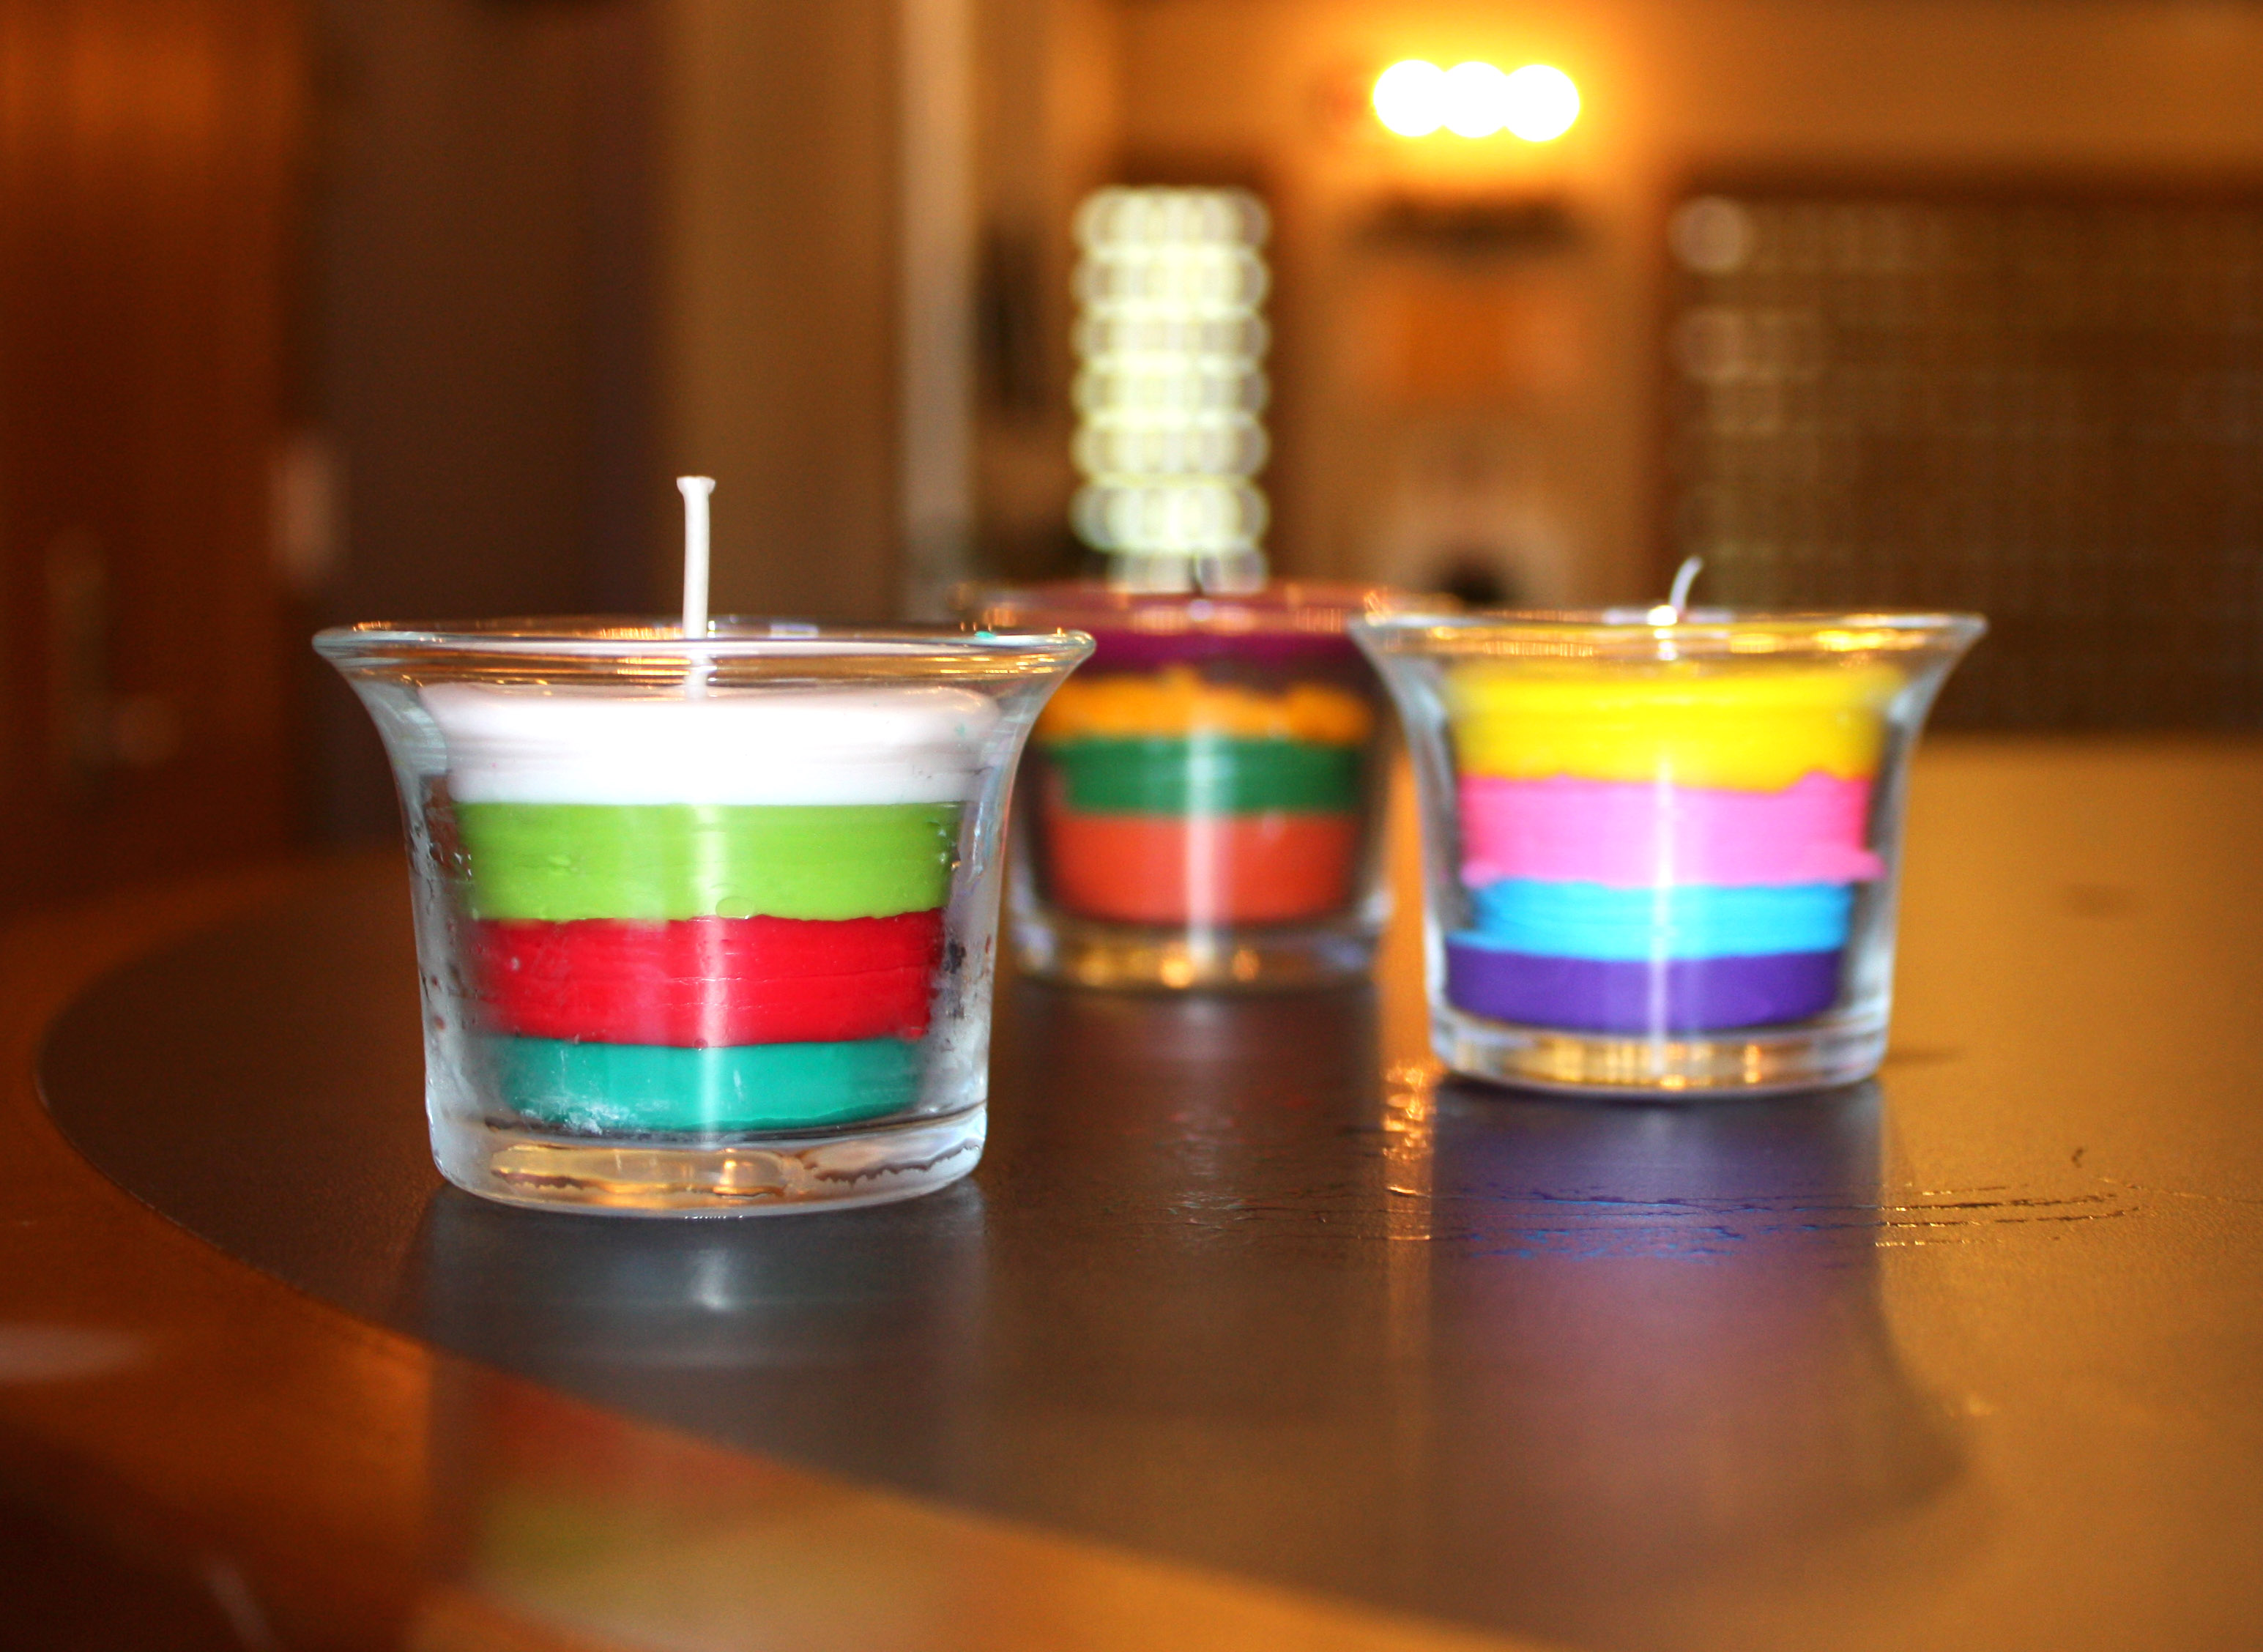 How to Make Crayon Candles Using the Microwave recommend